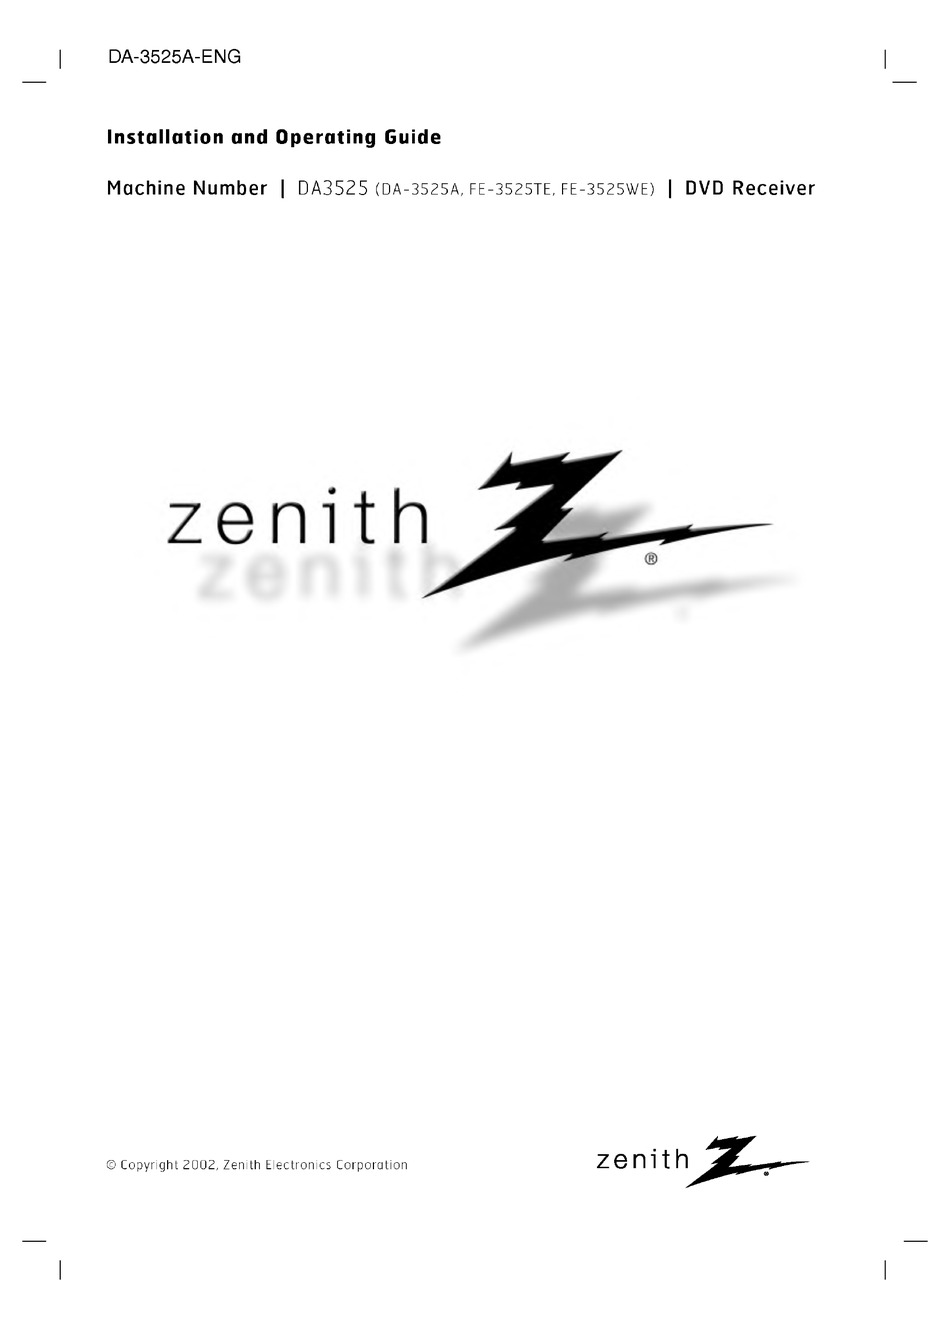 ZENITH Z INSTALLATION AND OPERATING MANUAL Pdf Download